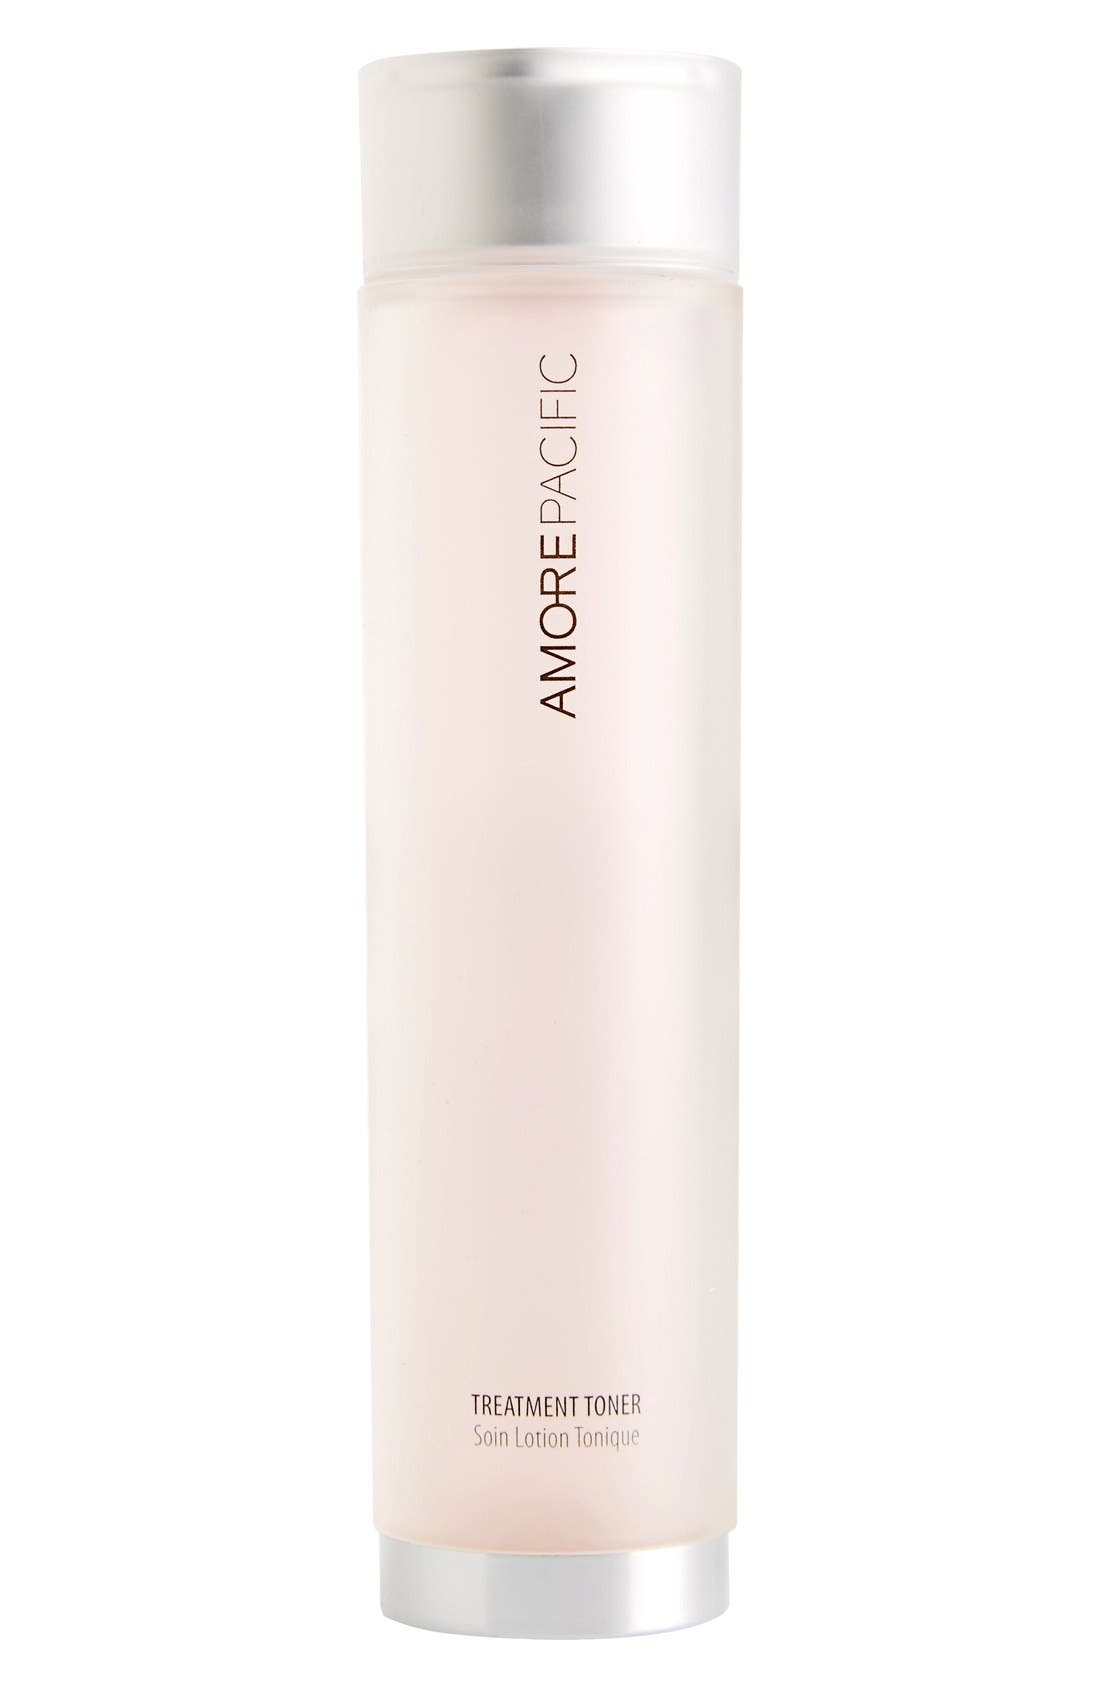 AMOREPACIFIC 'Treatment' Toner